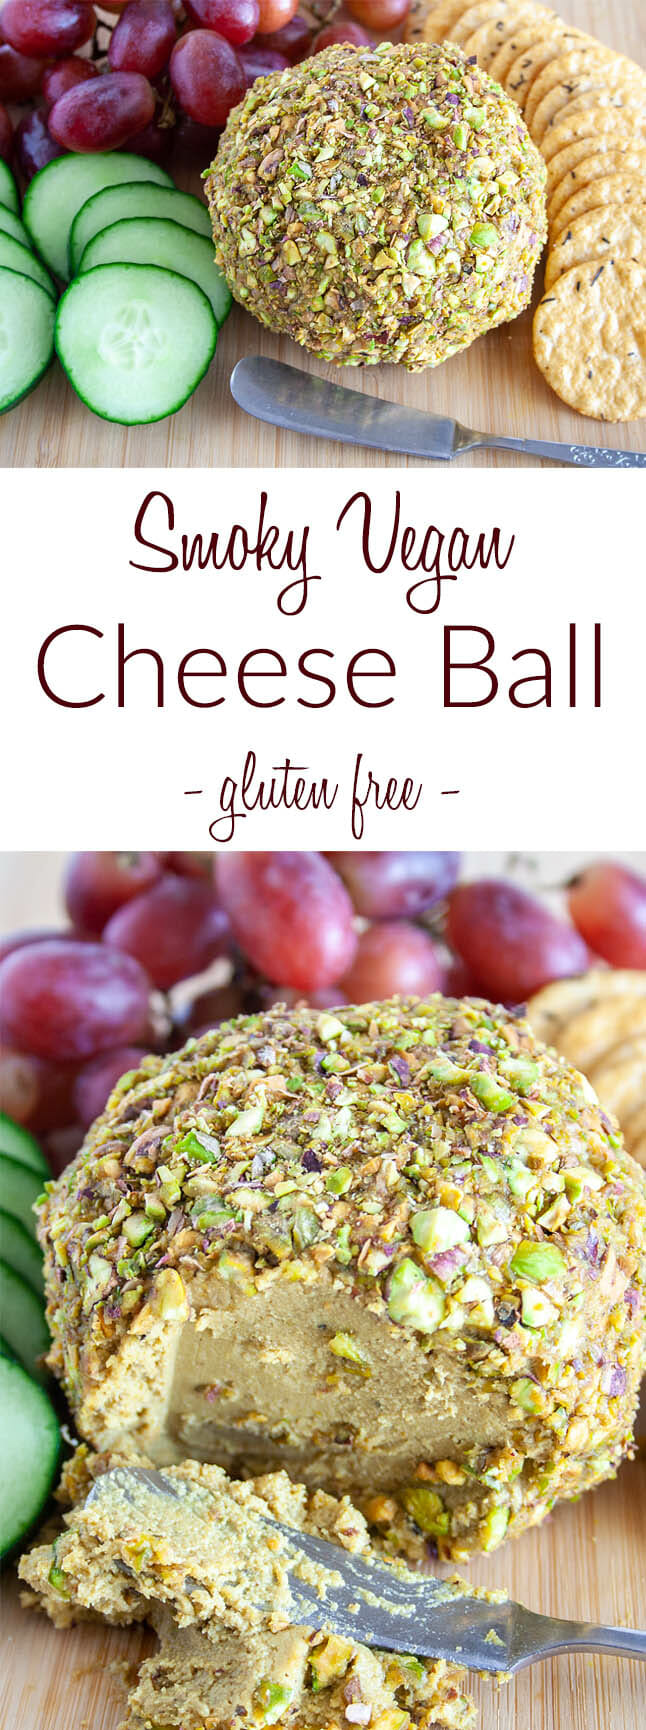 Smoky Vegan Cheese Ball collage photo with text.